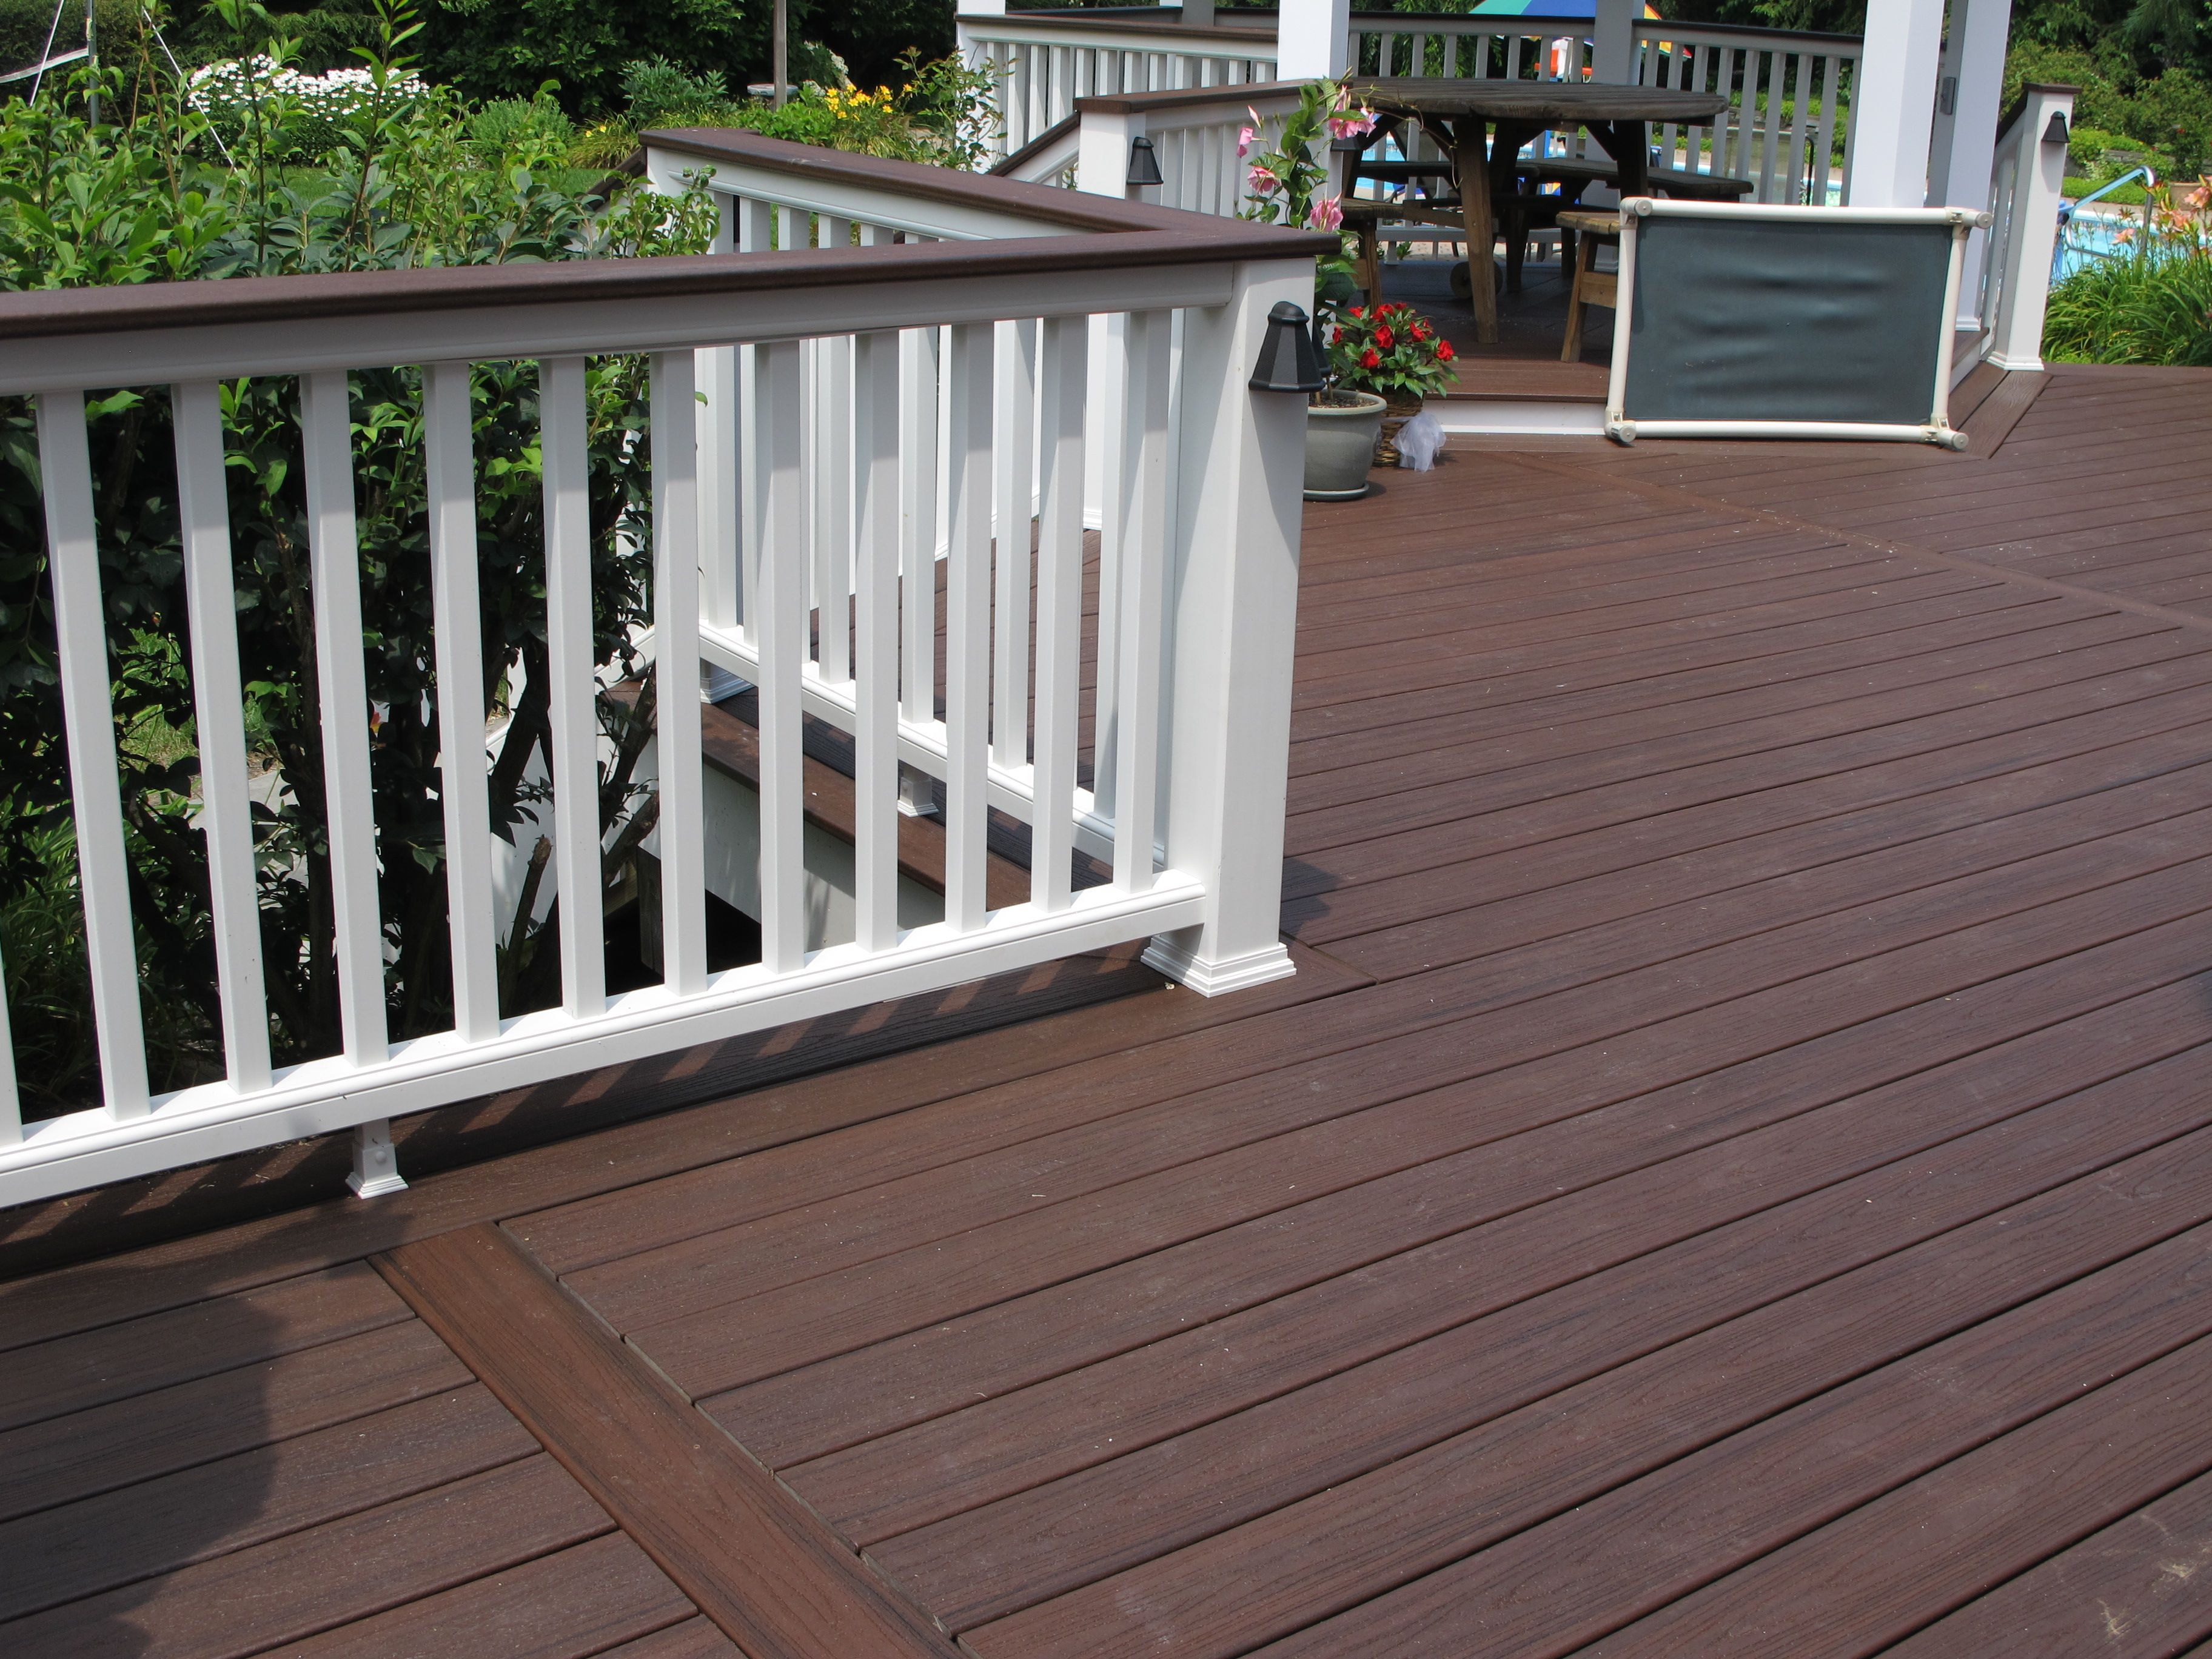 Bergendecks Project Lava Rock With White Railings Patio Pictures Exterior Colorsexterior Designcomposite Deckingcovered